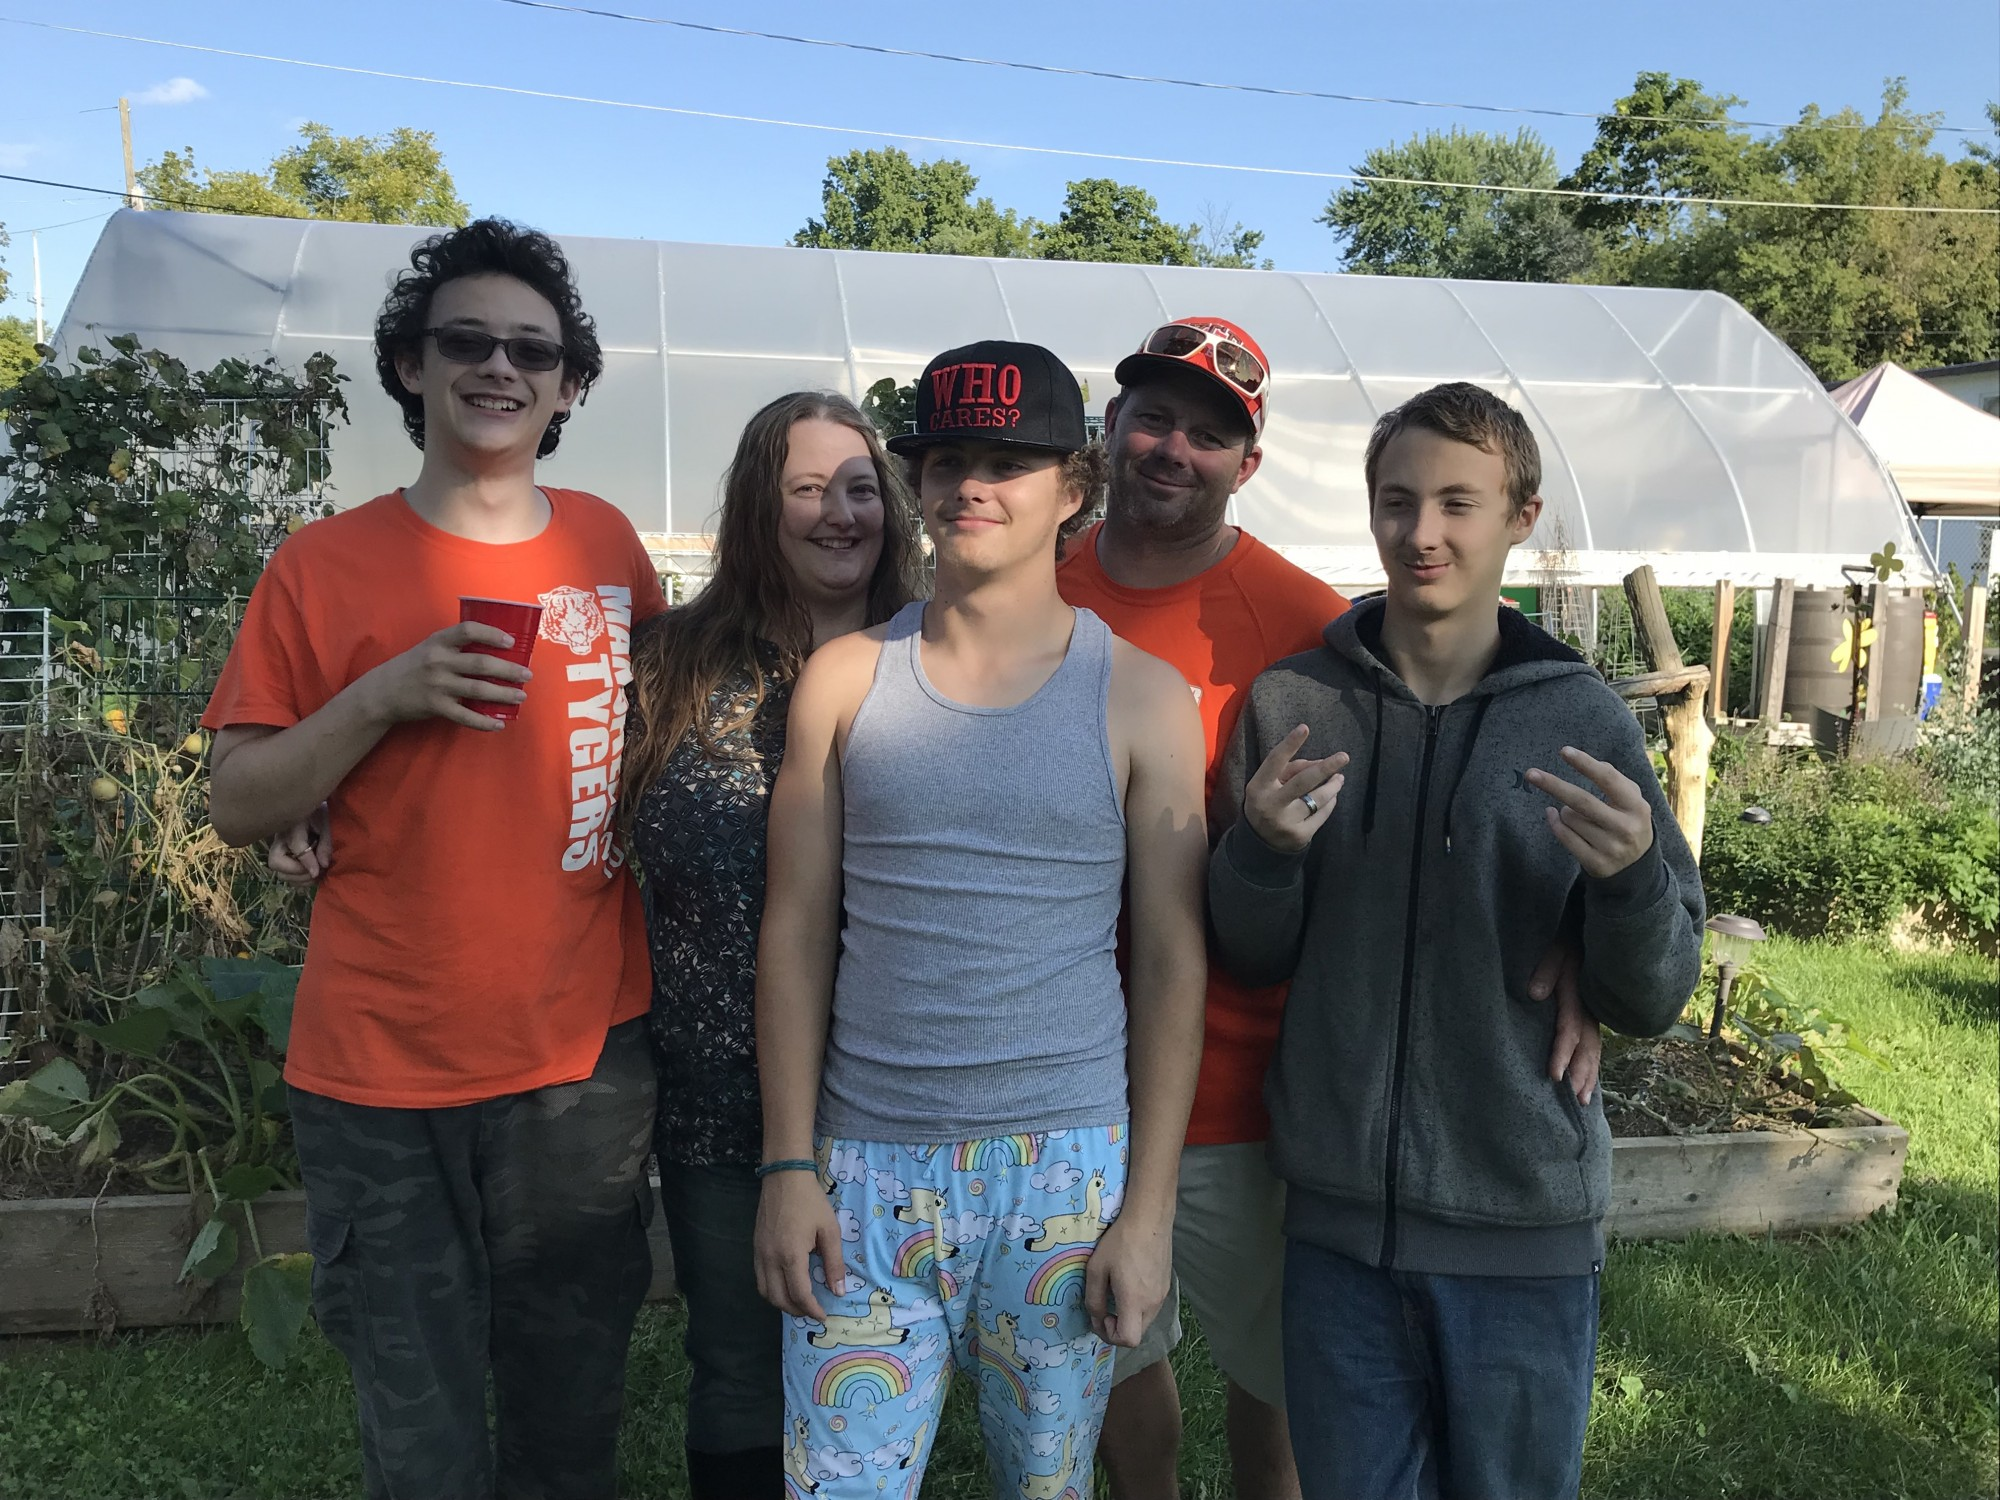 North End Resident Spotlight: Meet the Hunter Family